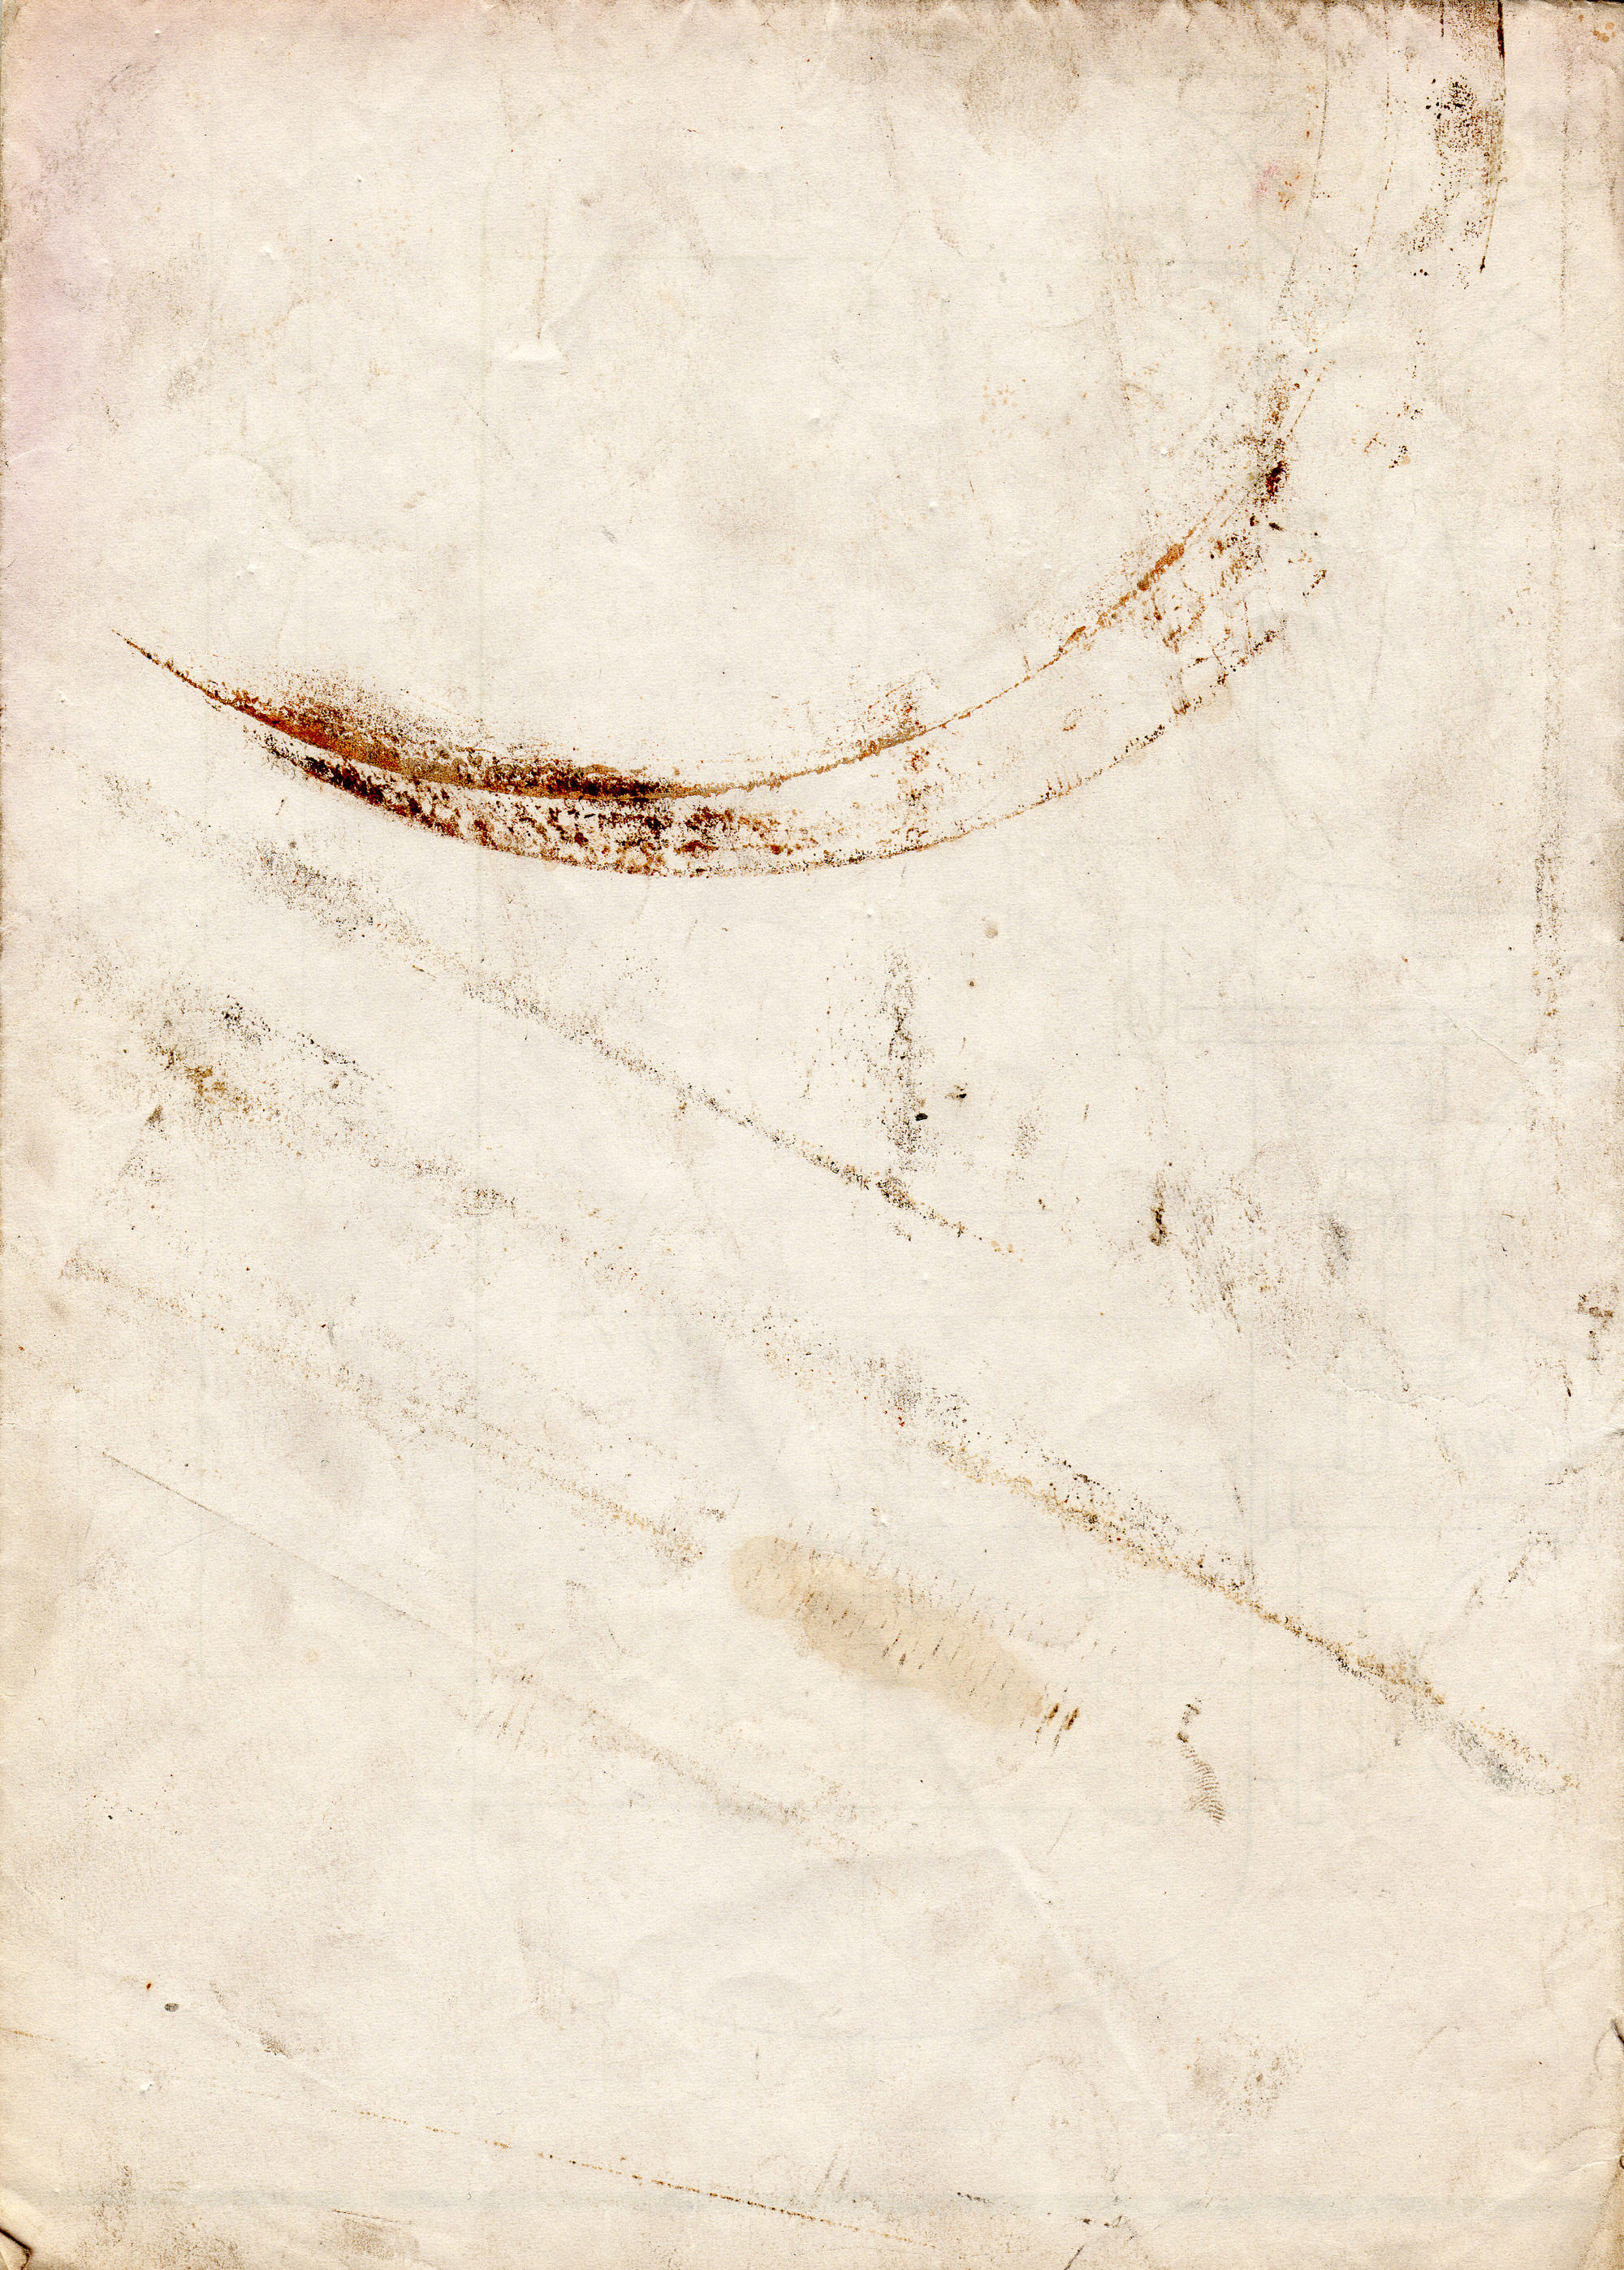 Grungy paper texture v.5 by bashcorpo on DeviantArt